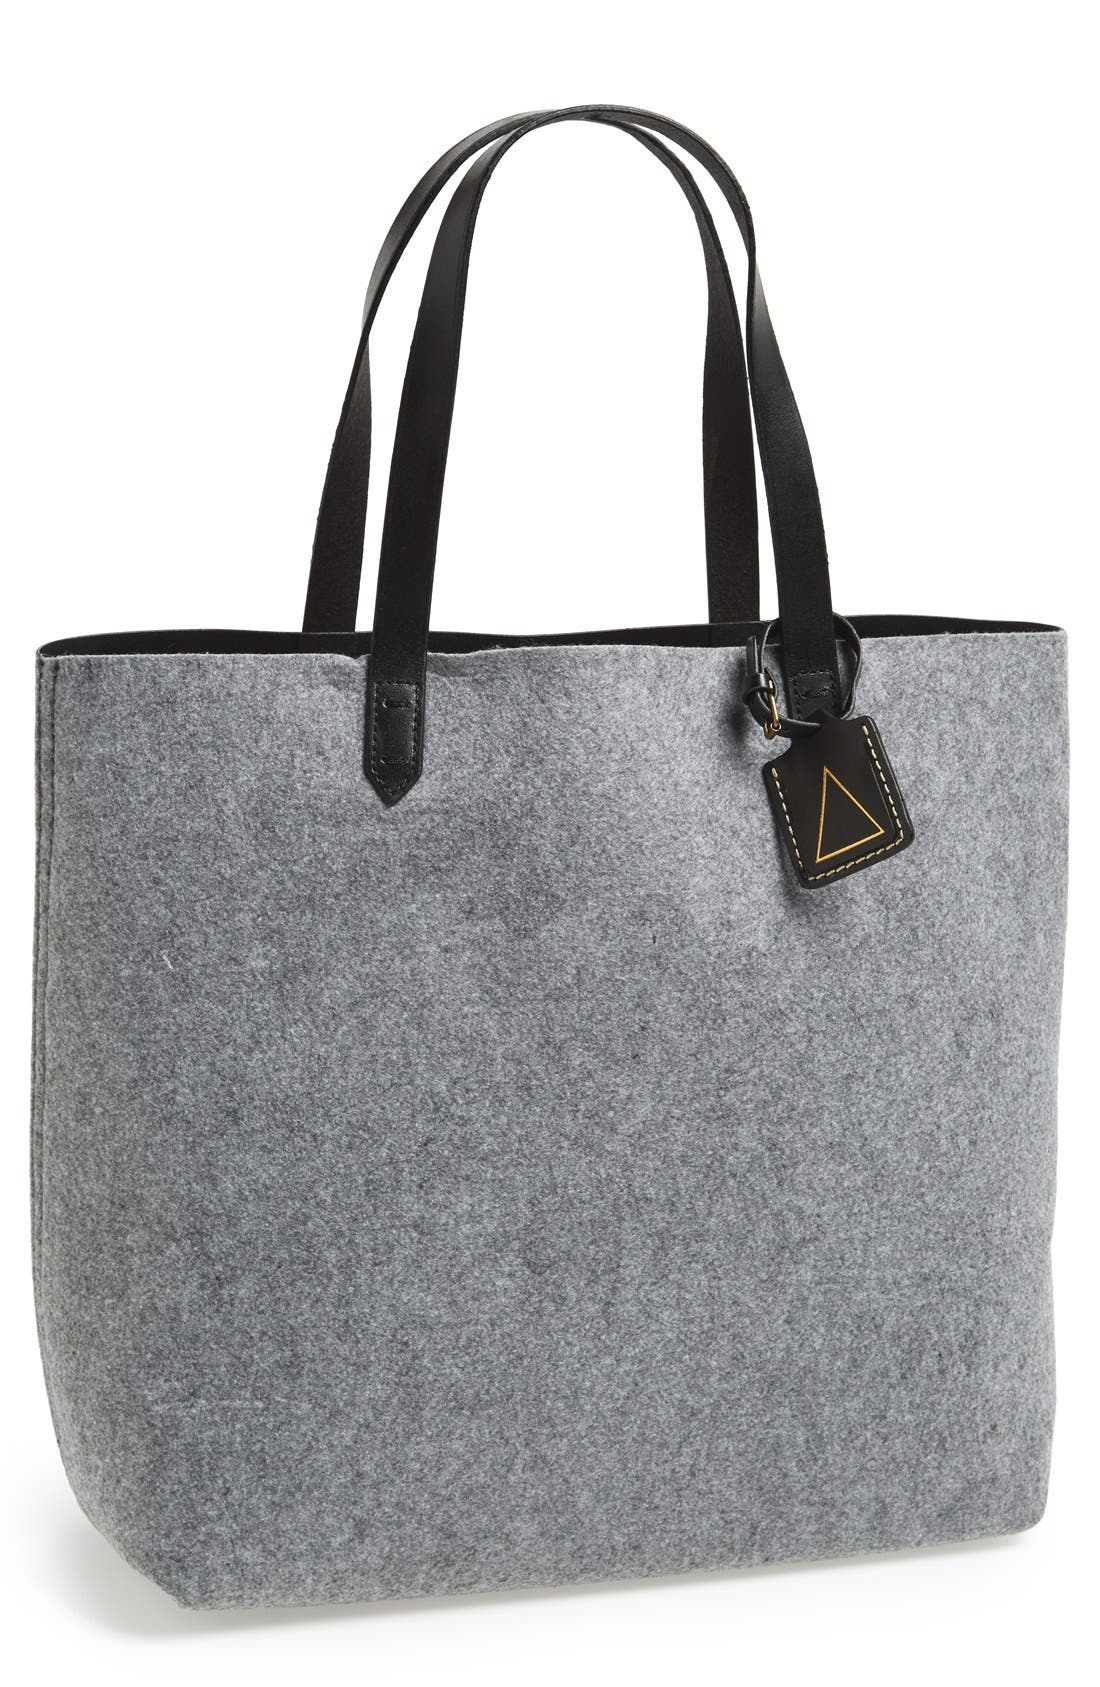 KELSI DAGGER BROOKLYN 'Commuter' Leather Tote, Main, color, 020